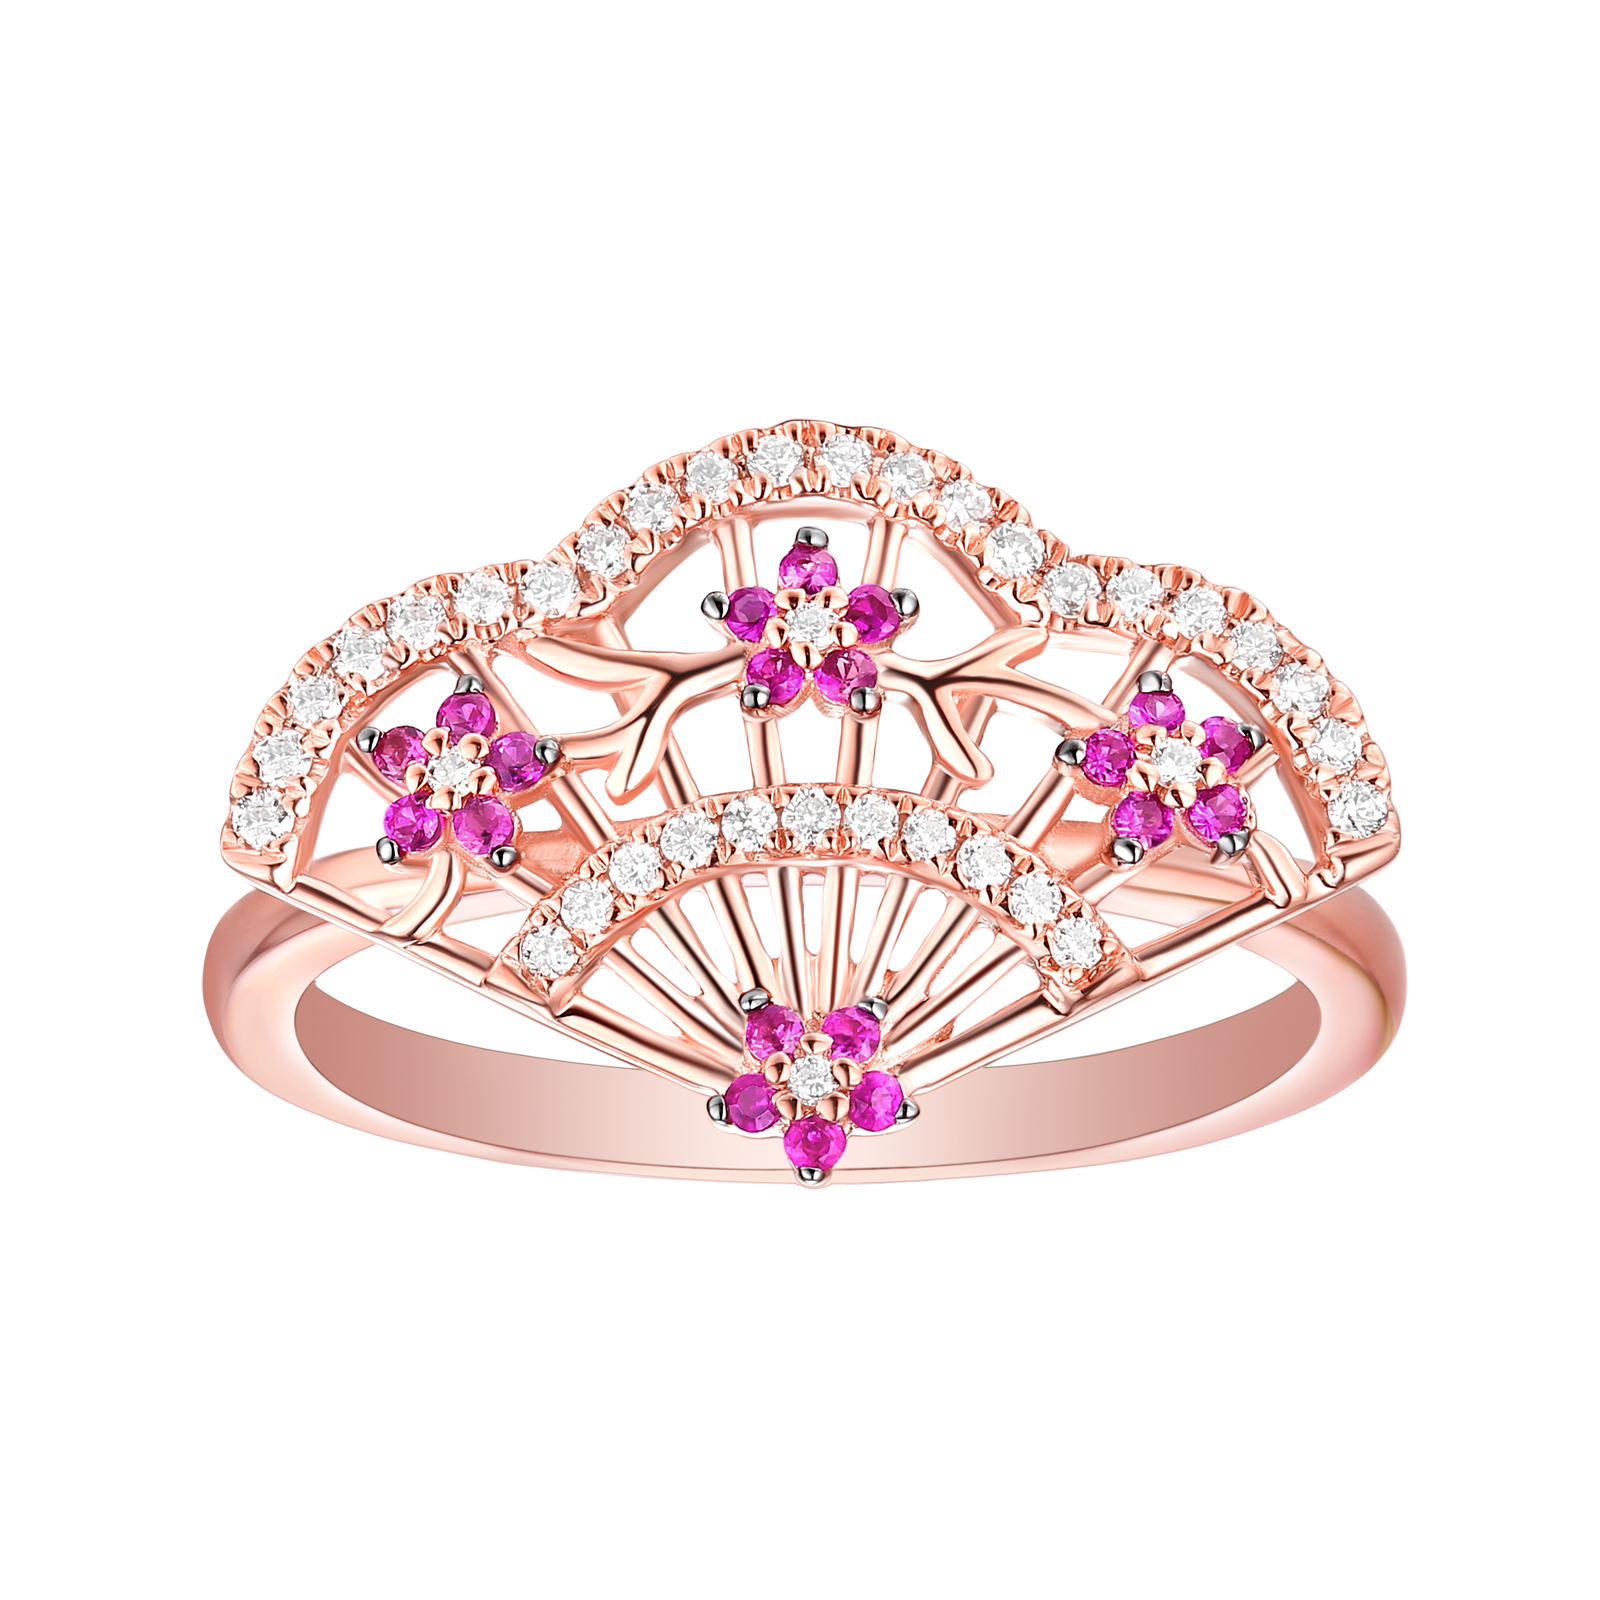 R29849WRB- 14K Rose Gold Diamond Ring, 0.26 TCW